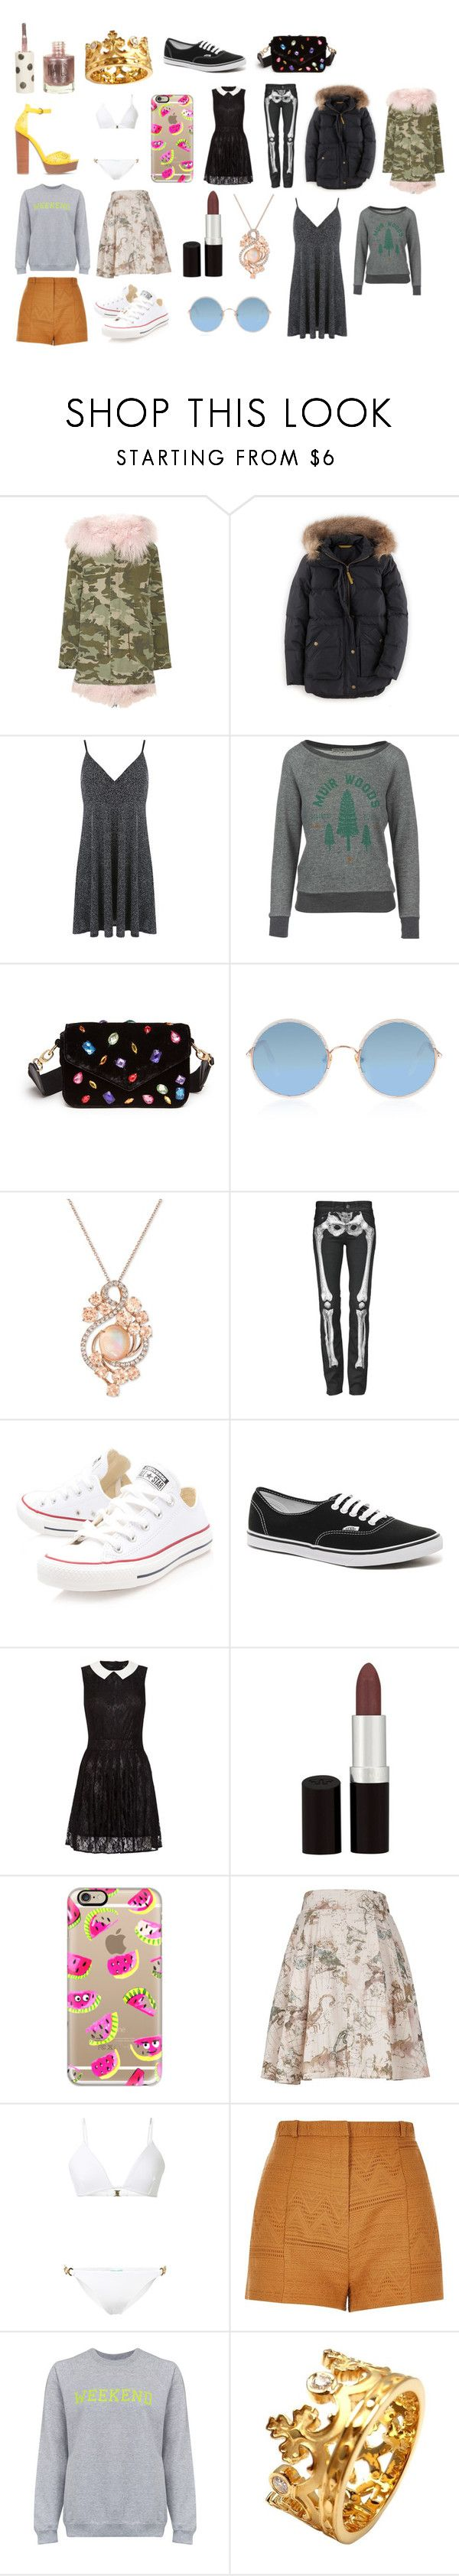 """May Favourites!"" by hailey-smith-13 ❤ liked on Polyvore featuring Mr & Mrs Italy, Boden, Miss Selfridge, Parks Project, Edie Parker, Sunday Somewhere, LE VIAN, Kreepsville 666, Converse and Vans"